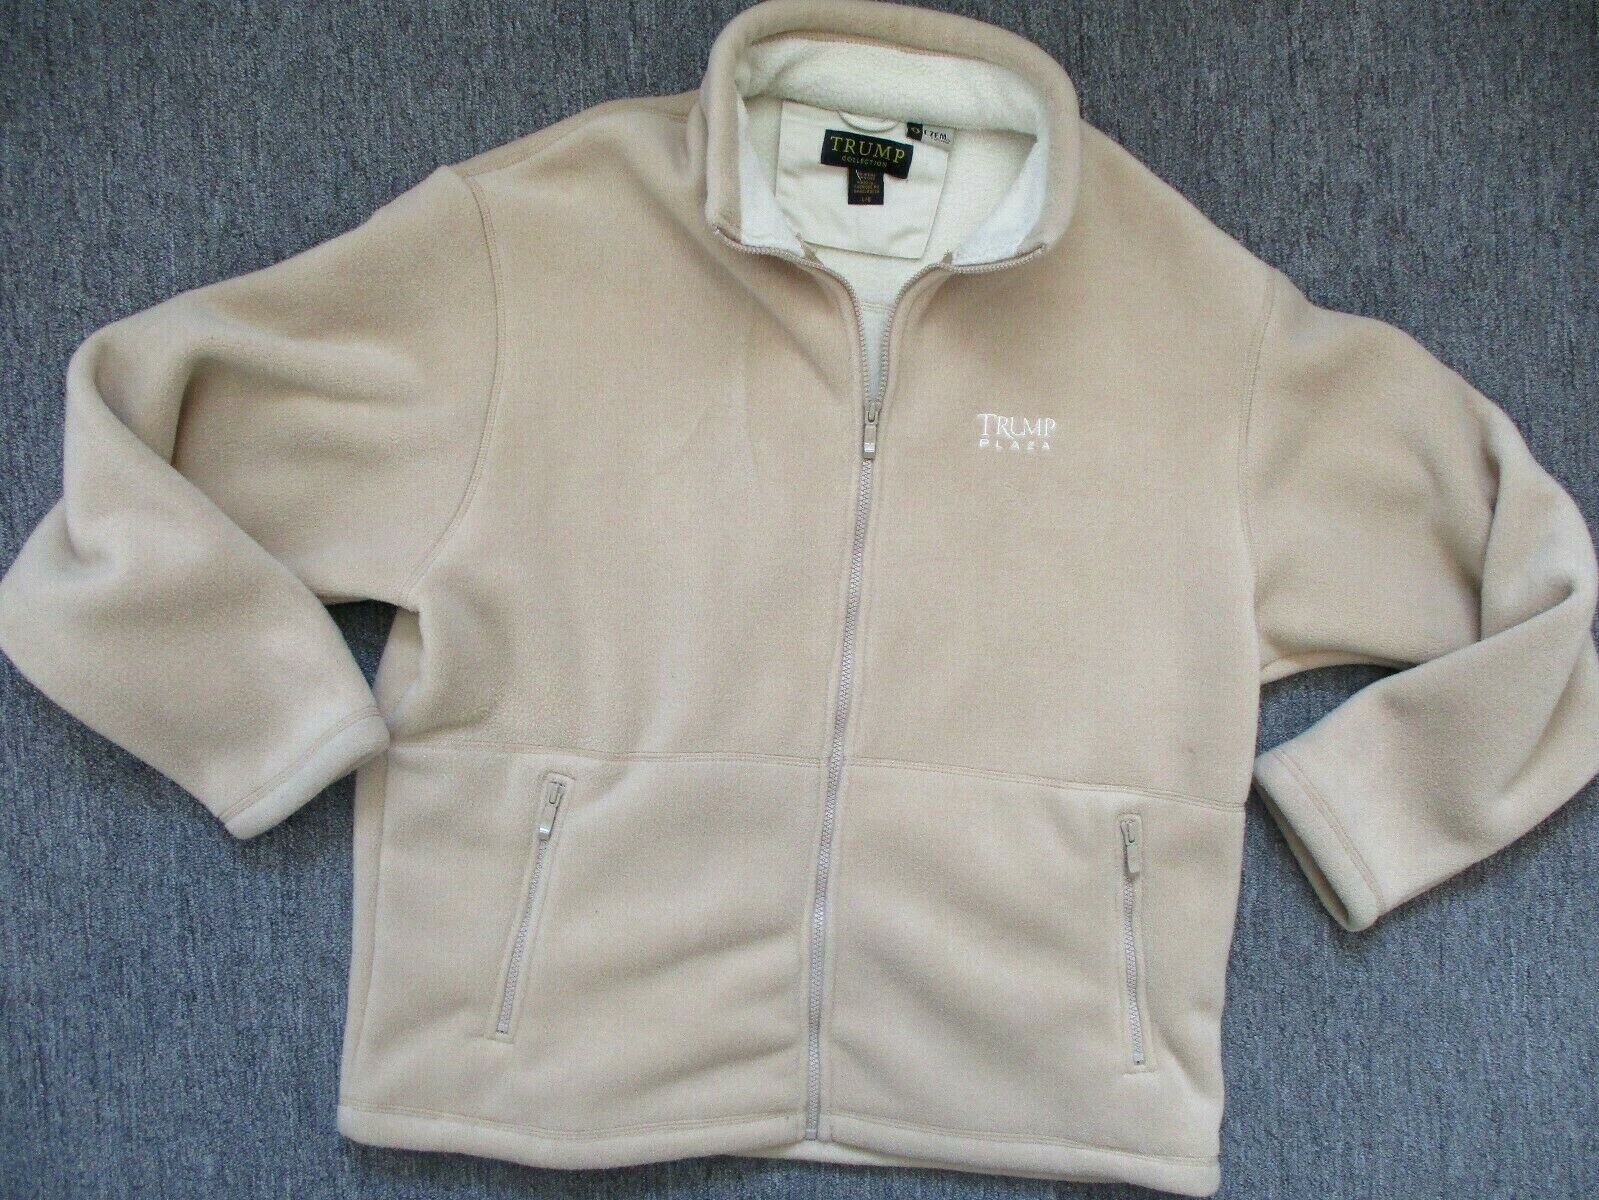 Unisex Trump Plaza Tan Soft Fleece Zip Up Jacket Size L